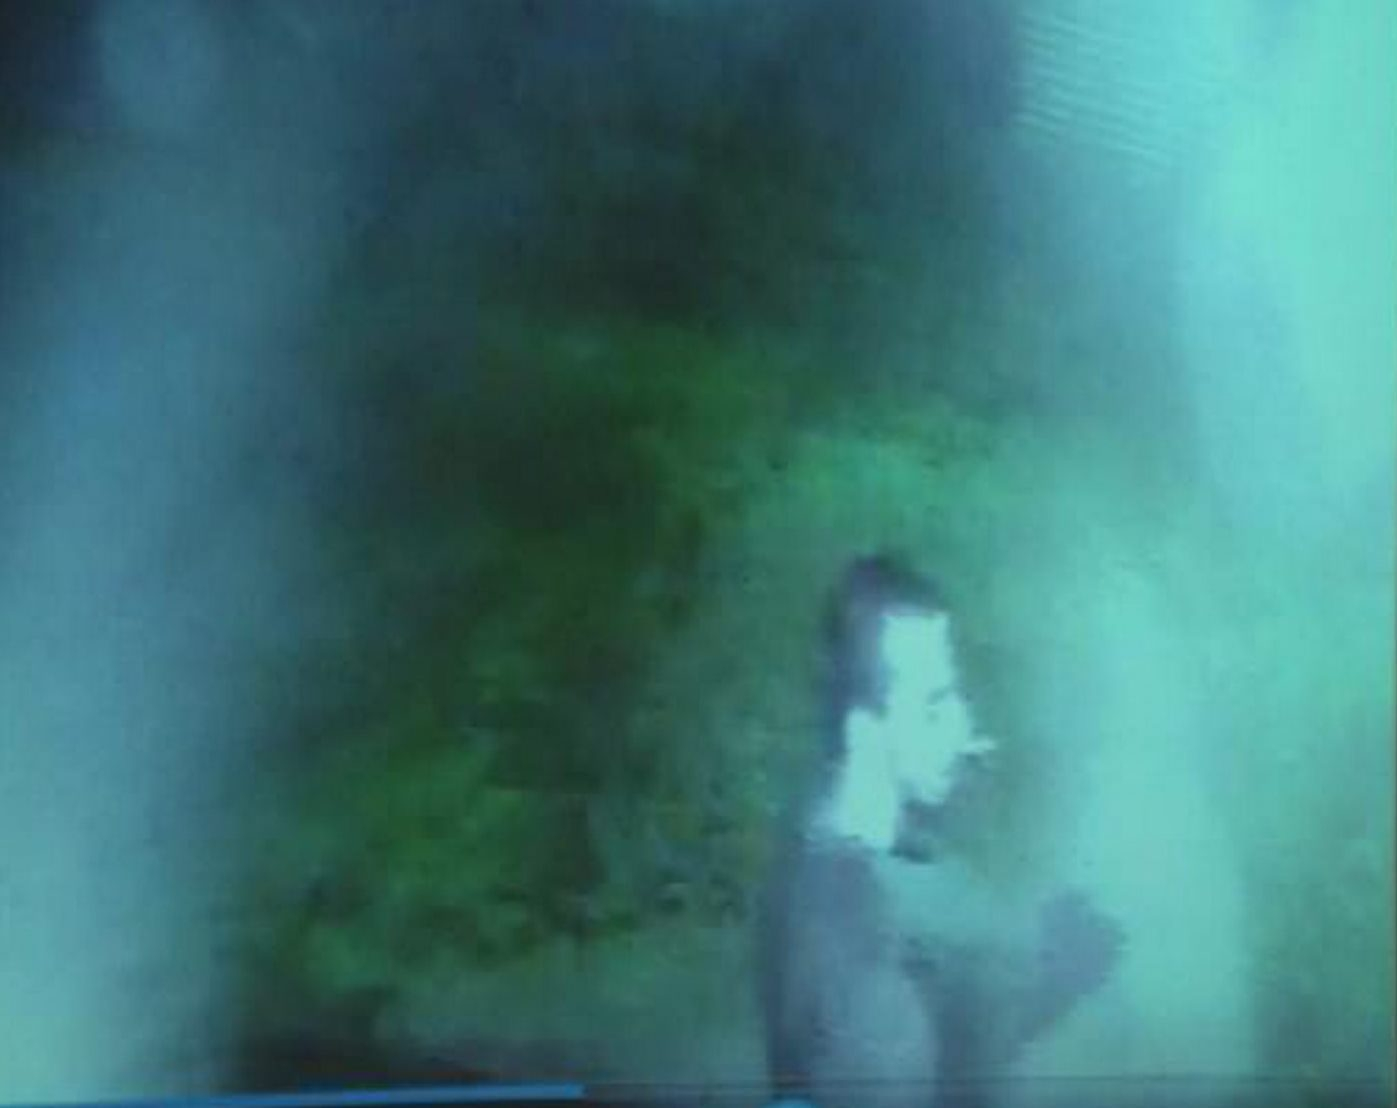 North Tonawanda police have released an image of a suspect in the rash of fires early this morning.